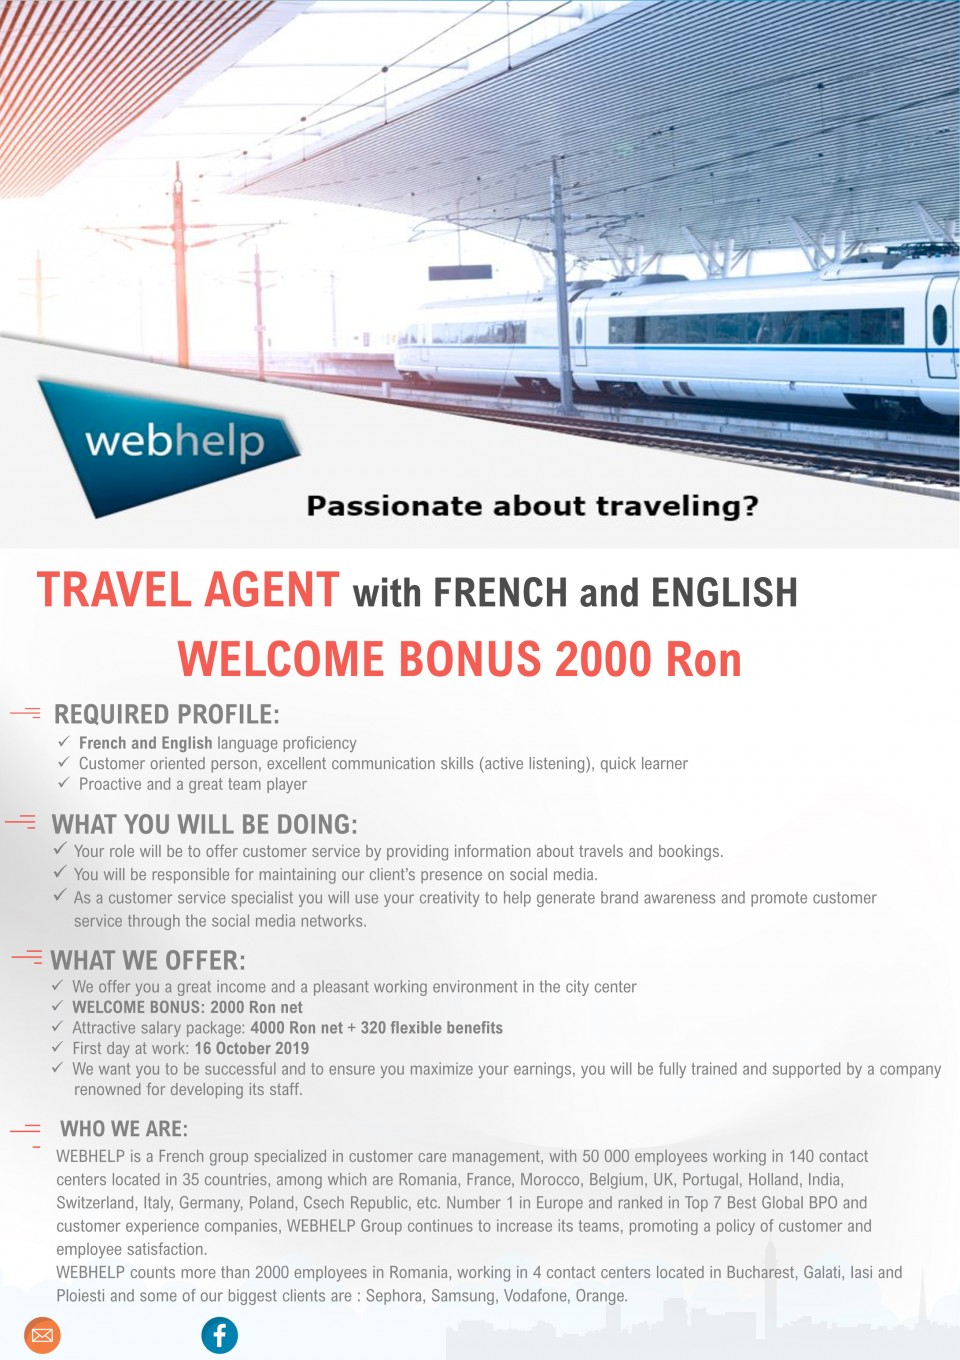 TRAVEL AGENT with FRENCH ft.nd ENGLISH WELCOME BONUS 2000 ron,   REQUIRED PROFILE:  ✓ French and English language proficiency ✓ Customer oriented person, excellent communication skills (active listening), quick learner ✓ Proactive and a great team player   WHAT YOU WILL BE DOING: ✓ Your role will be to offer customer service by providing information about travels and bookings. ✓ You will be responsible for maintaining our client's presence on social media. ✓ As a customer service specialist you will use your creativity to help generate brand awareness and promote customer service through the social media networks.   WHAT WE OFFER:  ✓ We offer you a great income and a pleasant working environment in the city center ✓ WELCOME BONUS: 2000 Ron net ✓ Attractive salary package: 4000 Ron net + 320 flexible benefits ✓ First day at work: 16 October 2019 ✓ We want you to be successful and to ensure you maximize your earnings, you will be fully trained and supported by a company renowned for developing its staff.   WHO WE ARE: WEBHELP is a French group specialized in customer care management, with 50 000 employees working in 140 contact centers located in 35 countries, among which are Romania, France, Morocco, Belgium, UK, Portugal, Holland, India, Switzerland, Italy, Germany, Poland, Csech Republic, etc. Number 1 in Europe and ranked in Top 7 Best Global BPO and customer experience companies, WEBHELP Group continues to increase its teams, promoting a policy of customer and employee satisfaction. WEBHELP counts more than 2000 employees in Romania, working in 4 contact centers located in Bucharest, Galati, Iasi and Ploiesti and some of our biggest clients are : Sephora, Samsung, Vodafone, Orange.